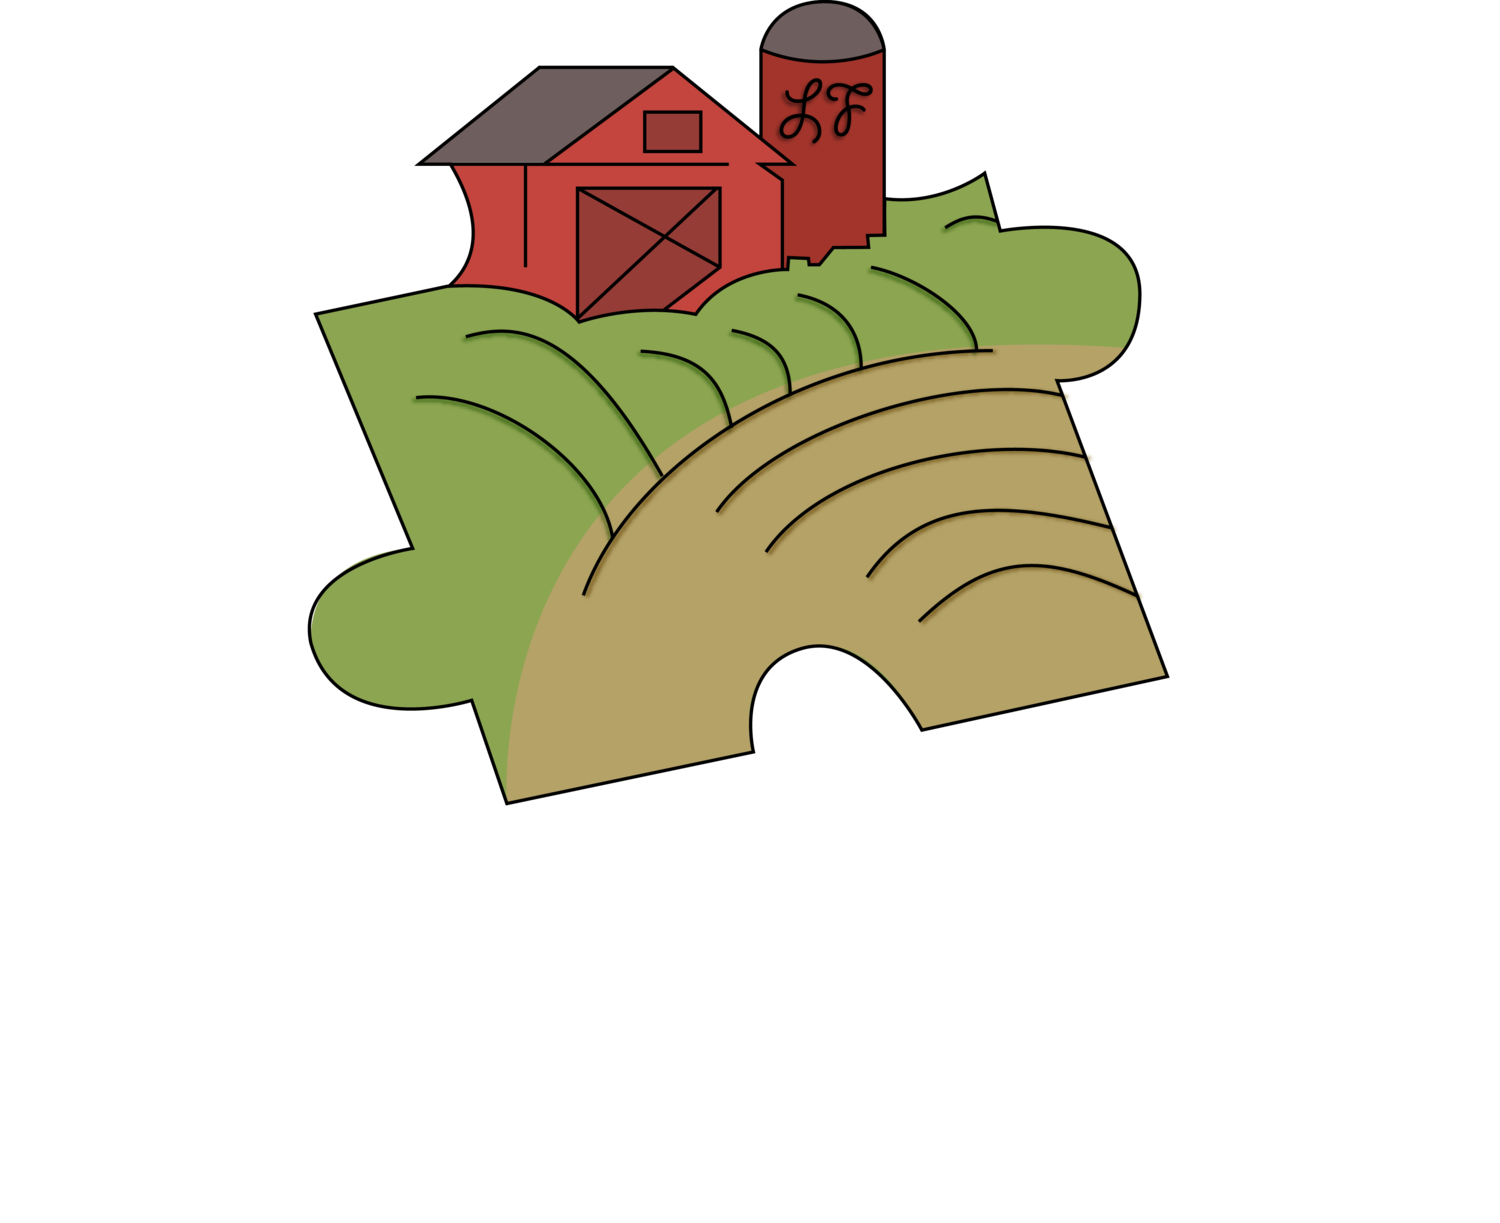 Farmers clipart rice plantation. Join our team legacy